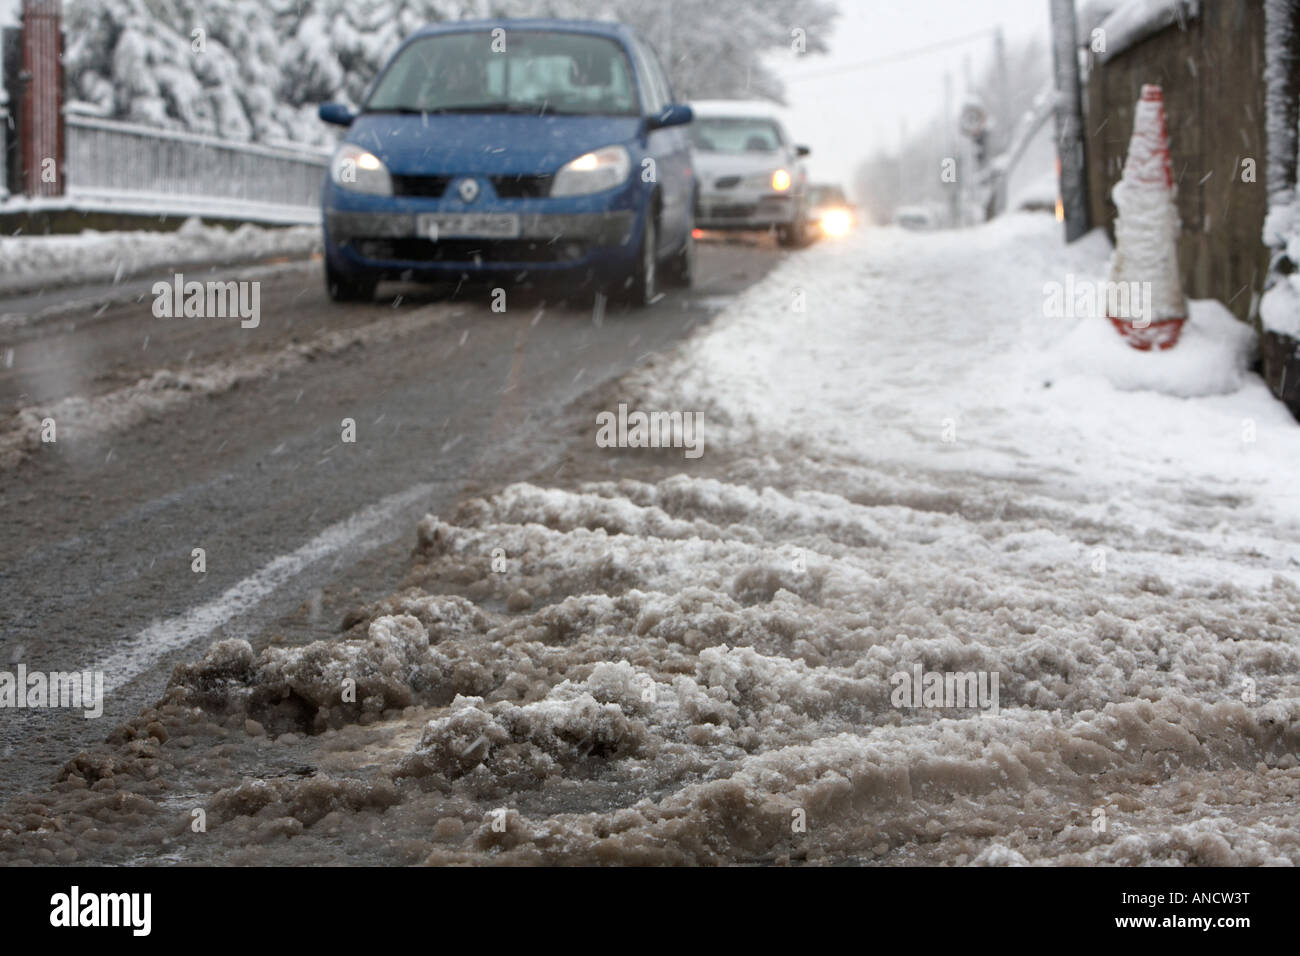 slush melting snow building up by the side of the road as cars travel past - Stock Image